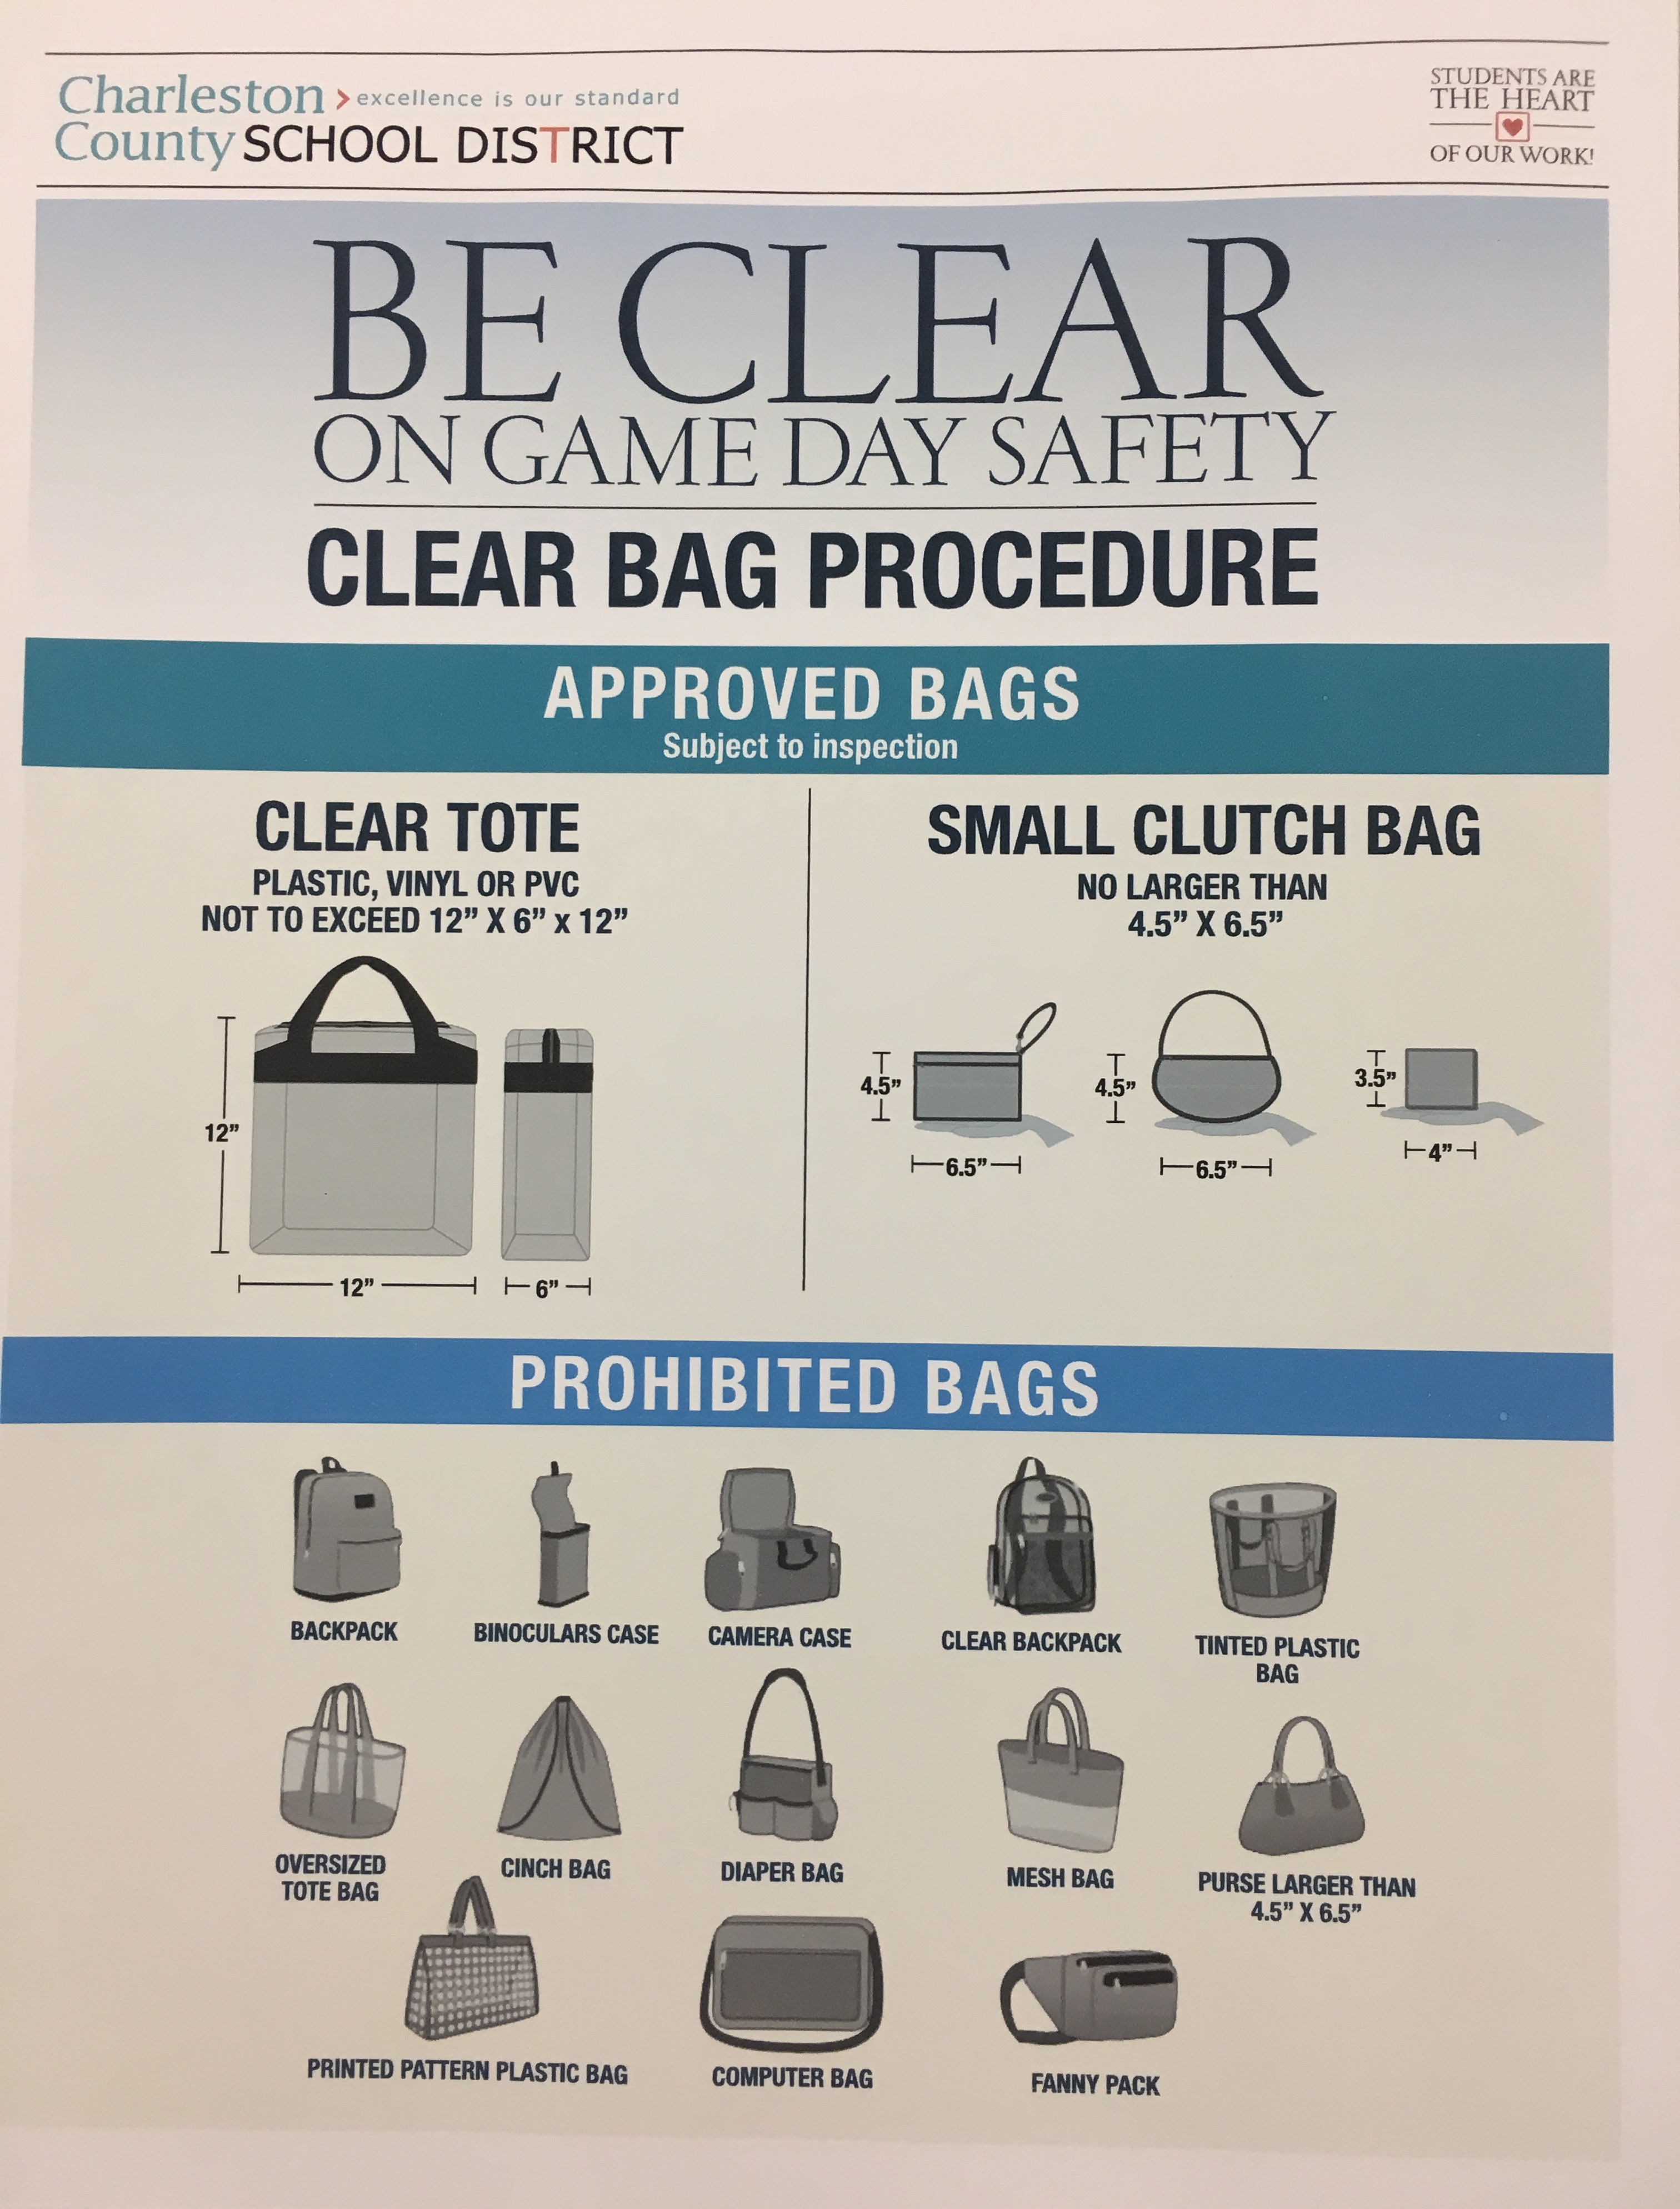 Clear Bag Procedure at Wando Stadium